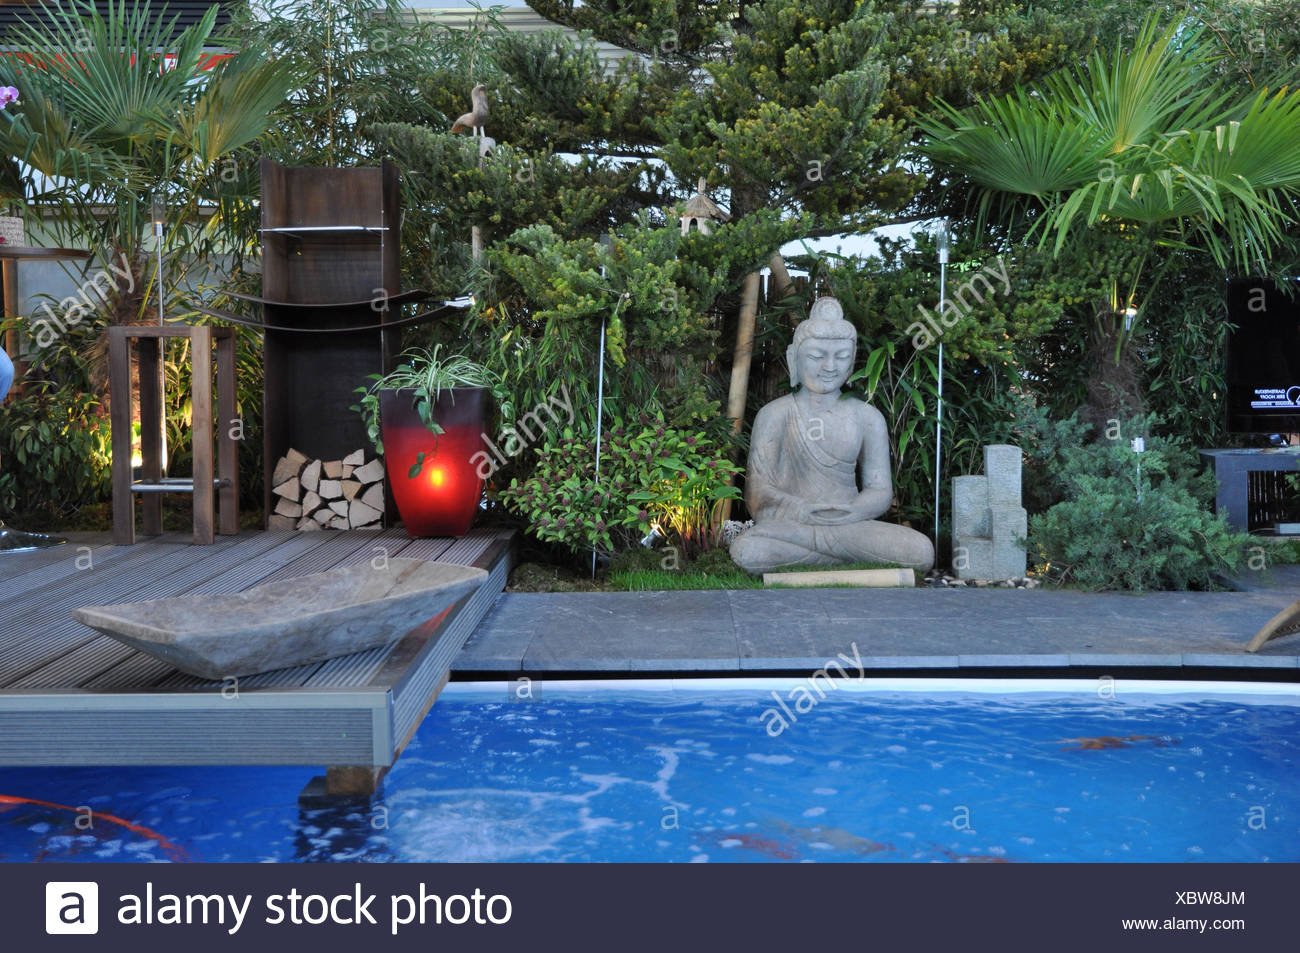 Zen Jacuzzi Pool With Exclusive Lounge Jacuzzi Garden Stock Photos And Jacuzzi Garden Stock Images